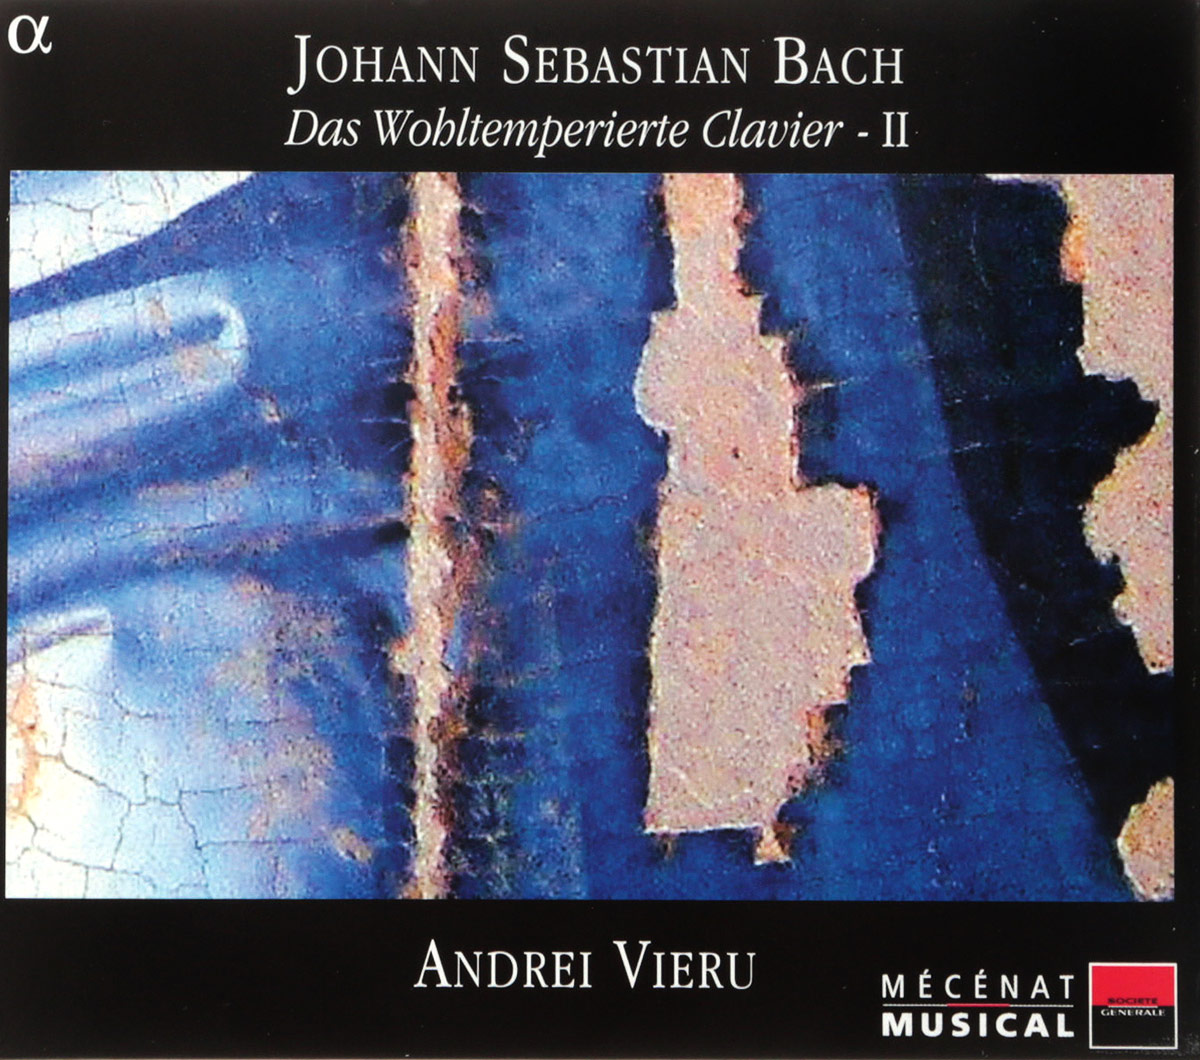 VARIOUS. BACH, J.S./THE WELL-TEMPERED CLAVIER, VOL.II BWV870-893/ANDREI VIERU (PIANO). 3